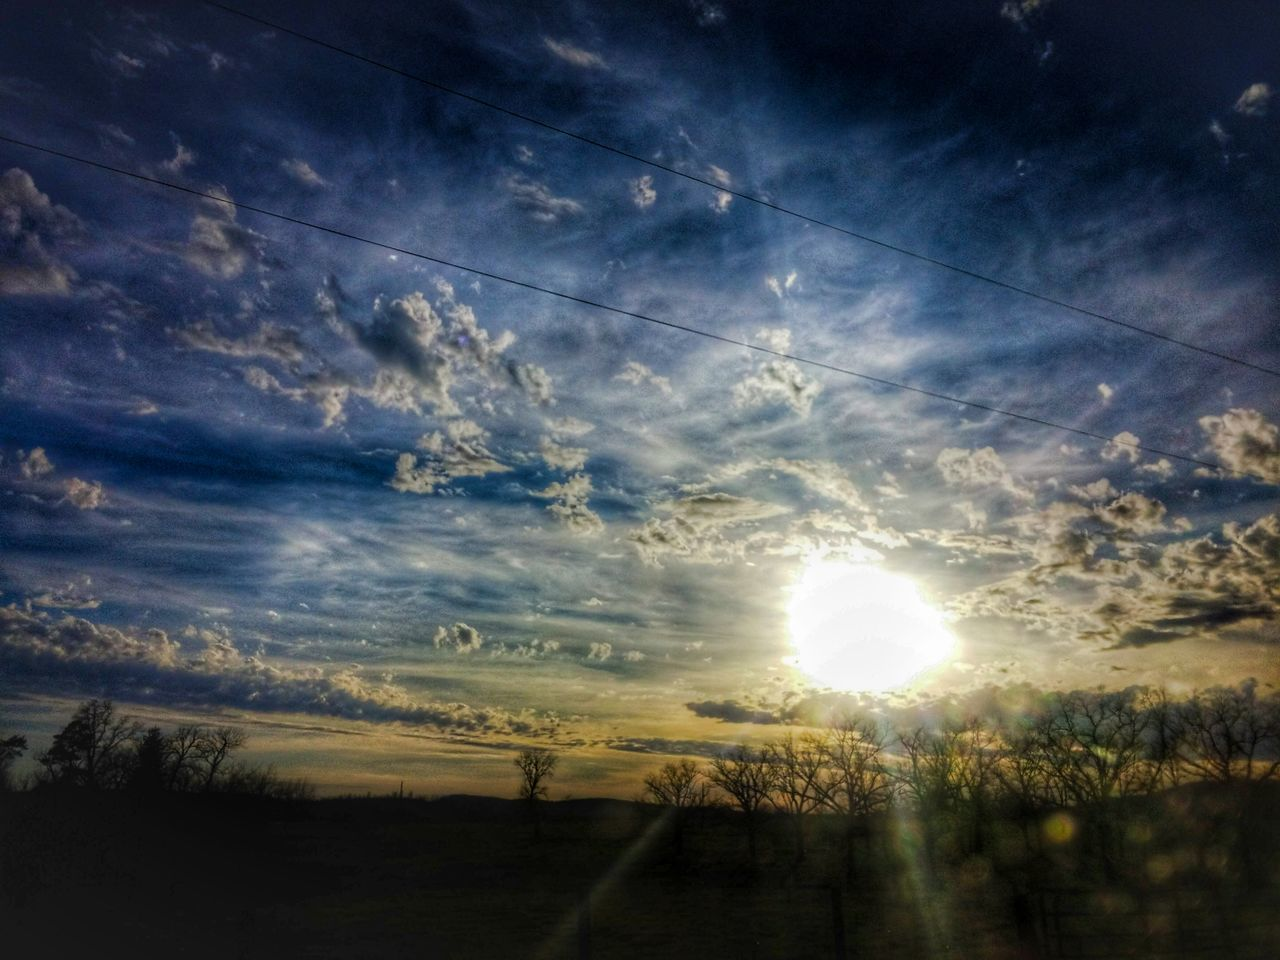 nature, sun, tranquil scene, sky, tranquility, scenics, beauty in nature, no people, sunset, sunlight, silhouette, cloud - sky, outdoors, landscape, tree, day, vapor trail